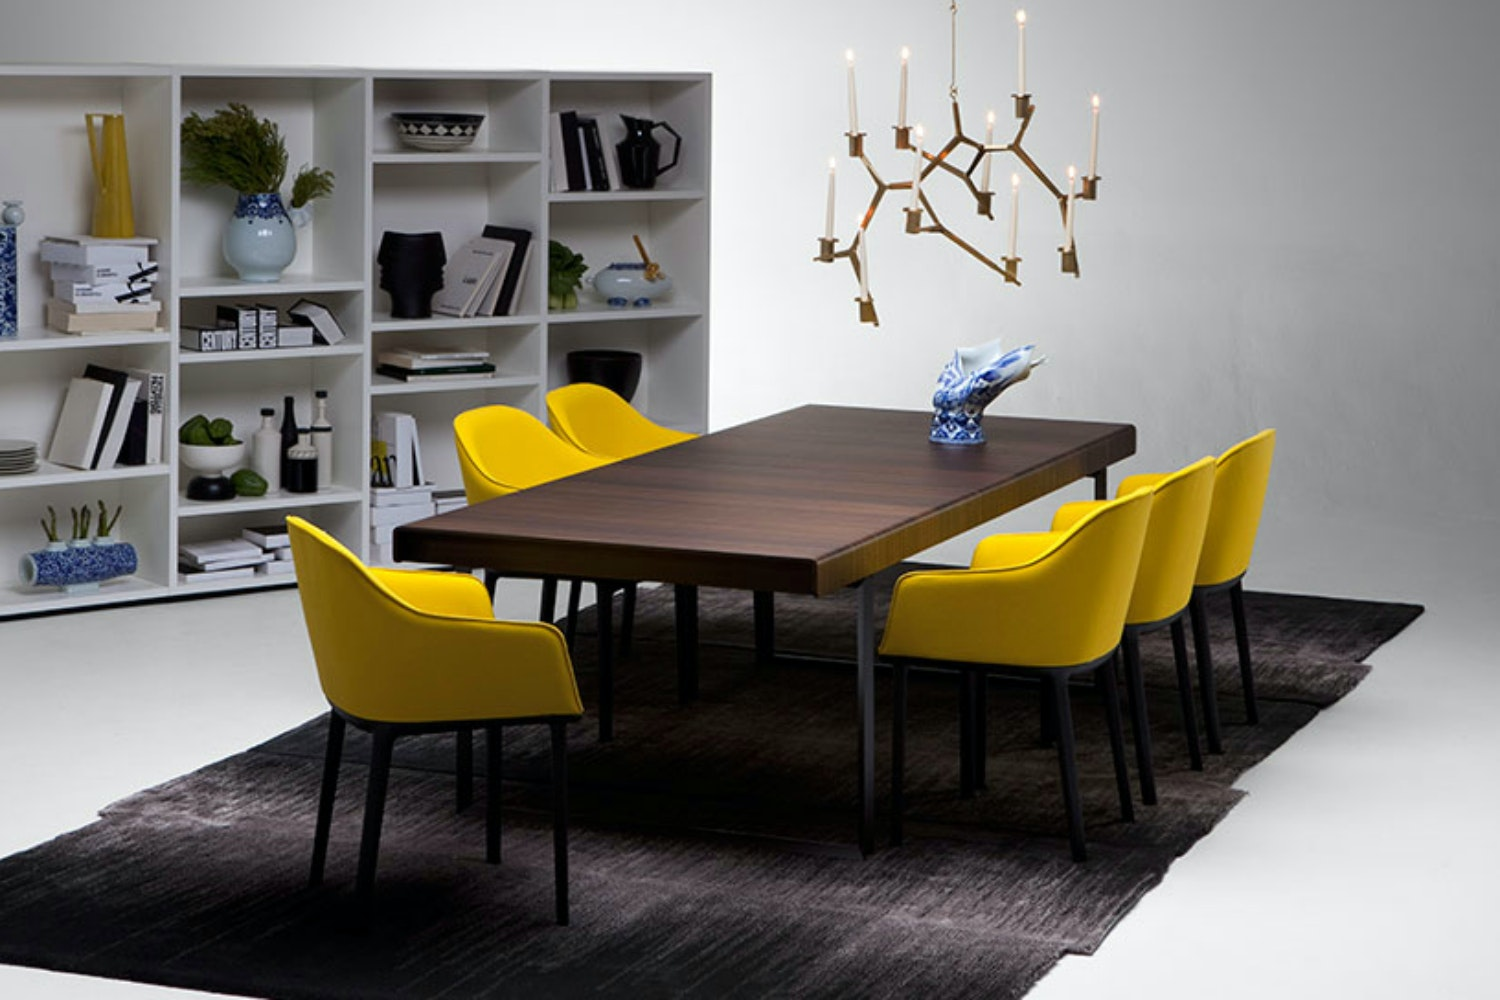 Softshell Chair Yellow Mustard by Ronan & Erwan Bouroullec for Vitra